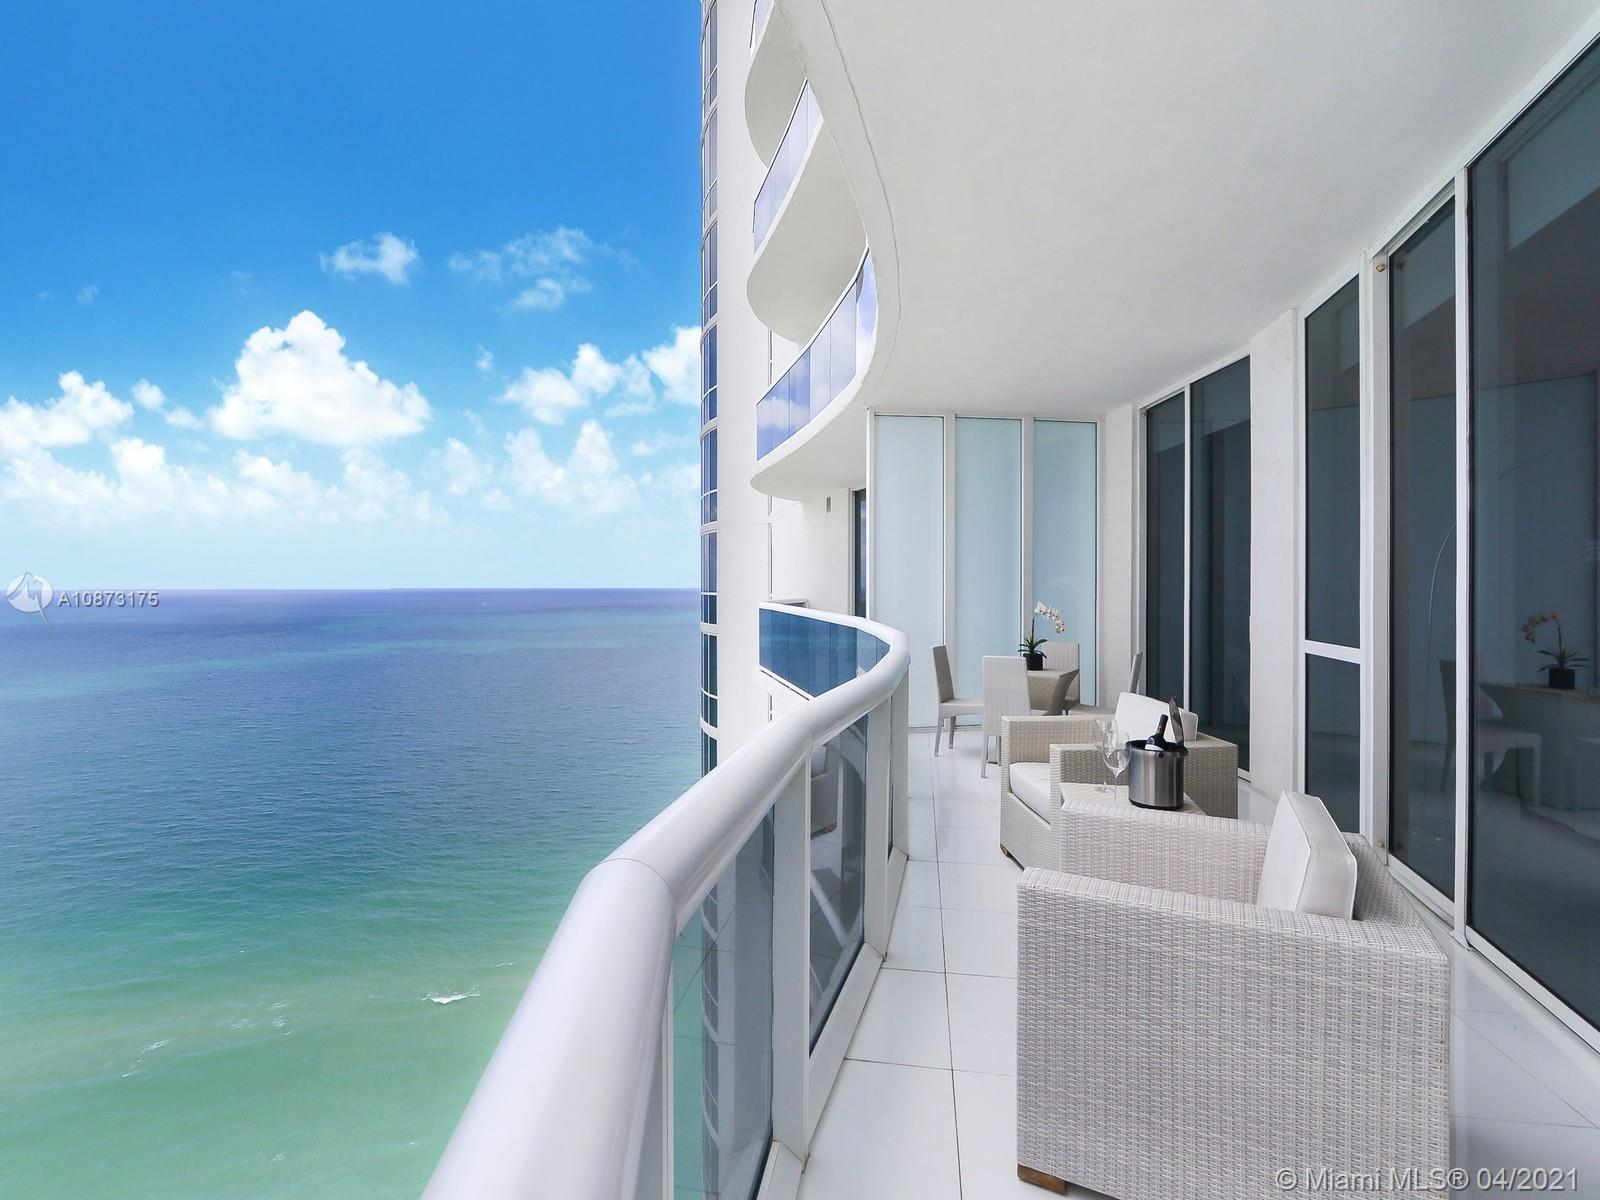 The best location along the beaches at the southernmost point of Sunny Isles Beach. This fantastic t